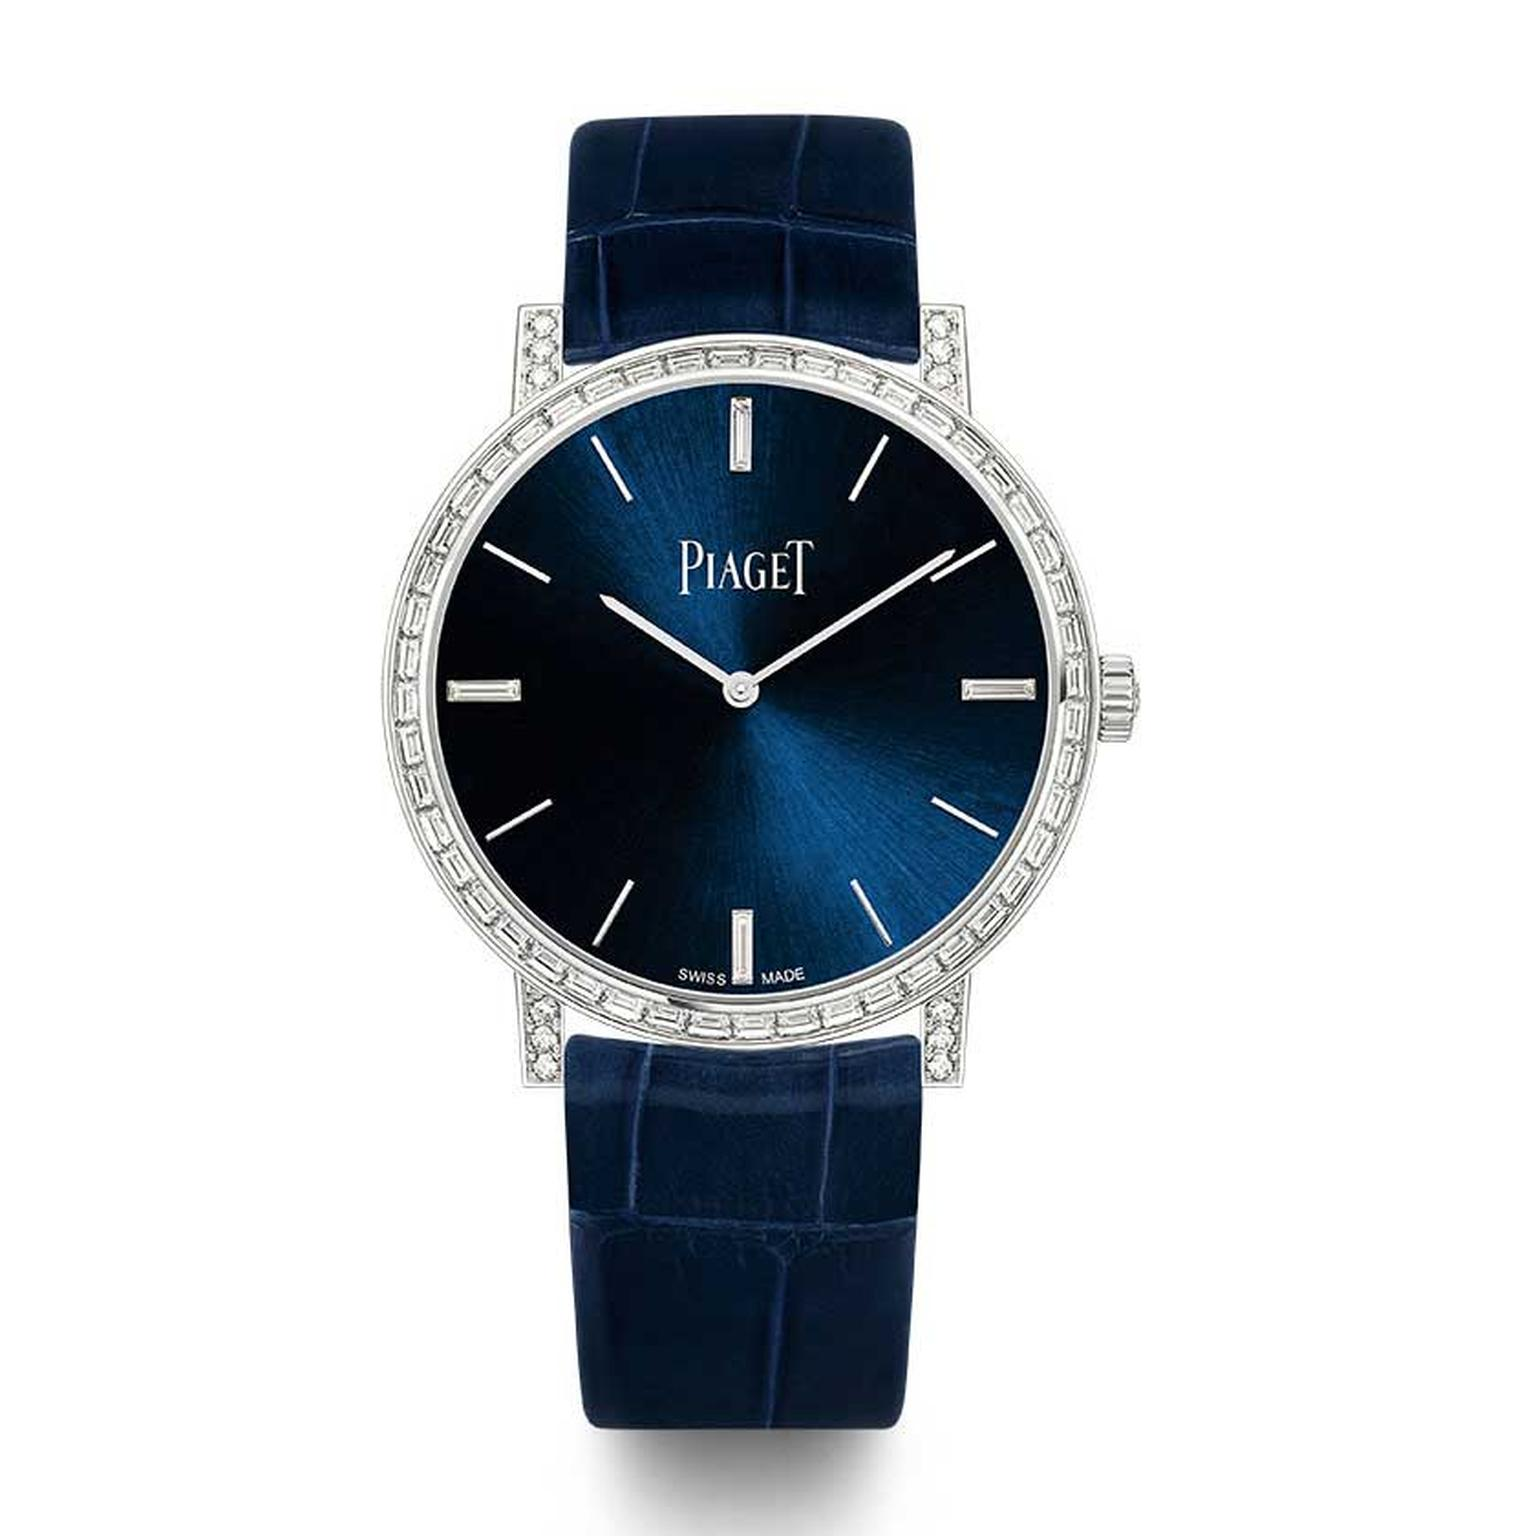 Piaget Altiplano High Jewellery watch 2019